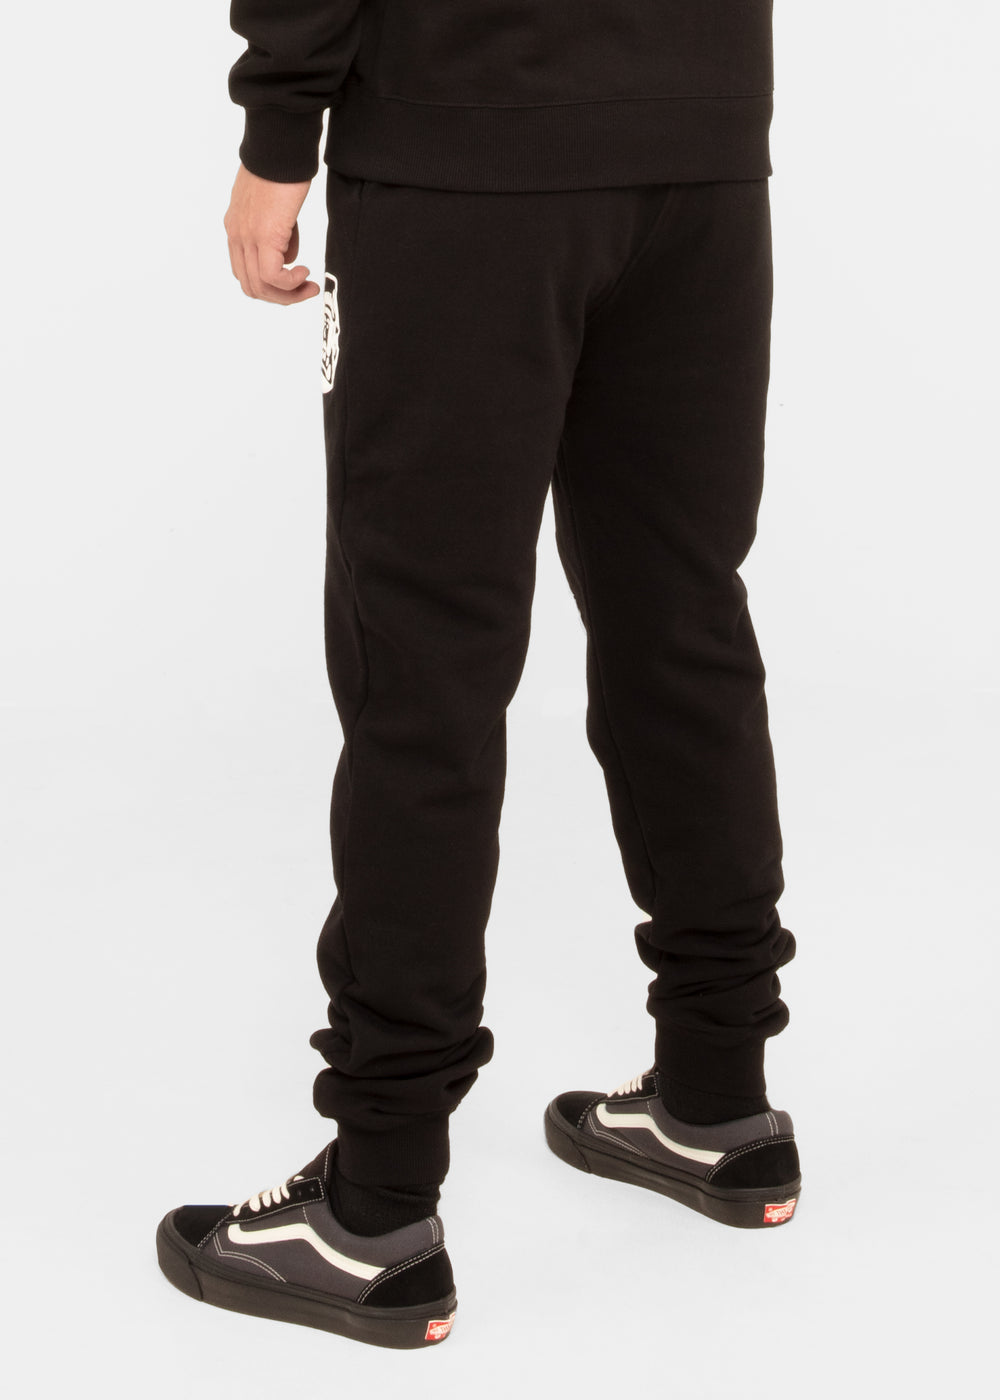 billionaire-boys-club-wealth-jogger-891-7102-blk-blk-3